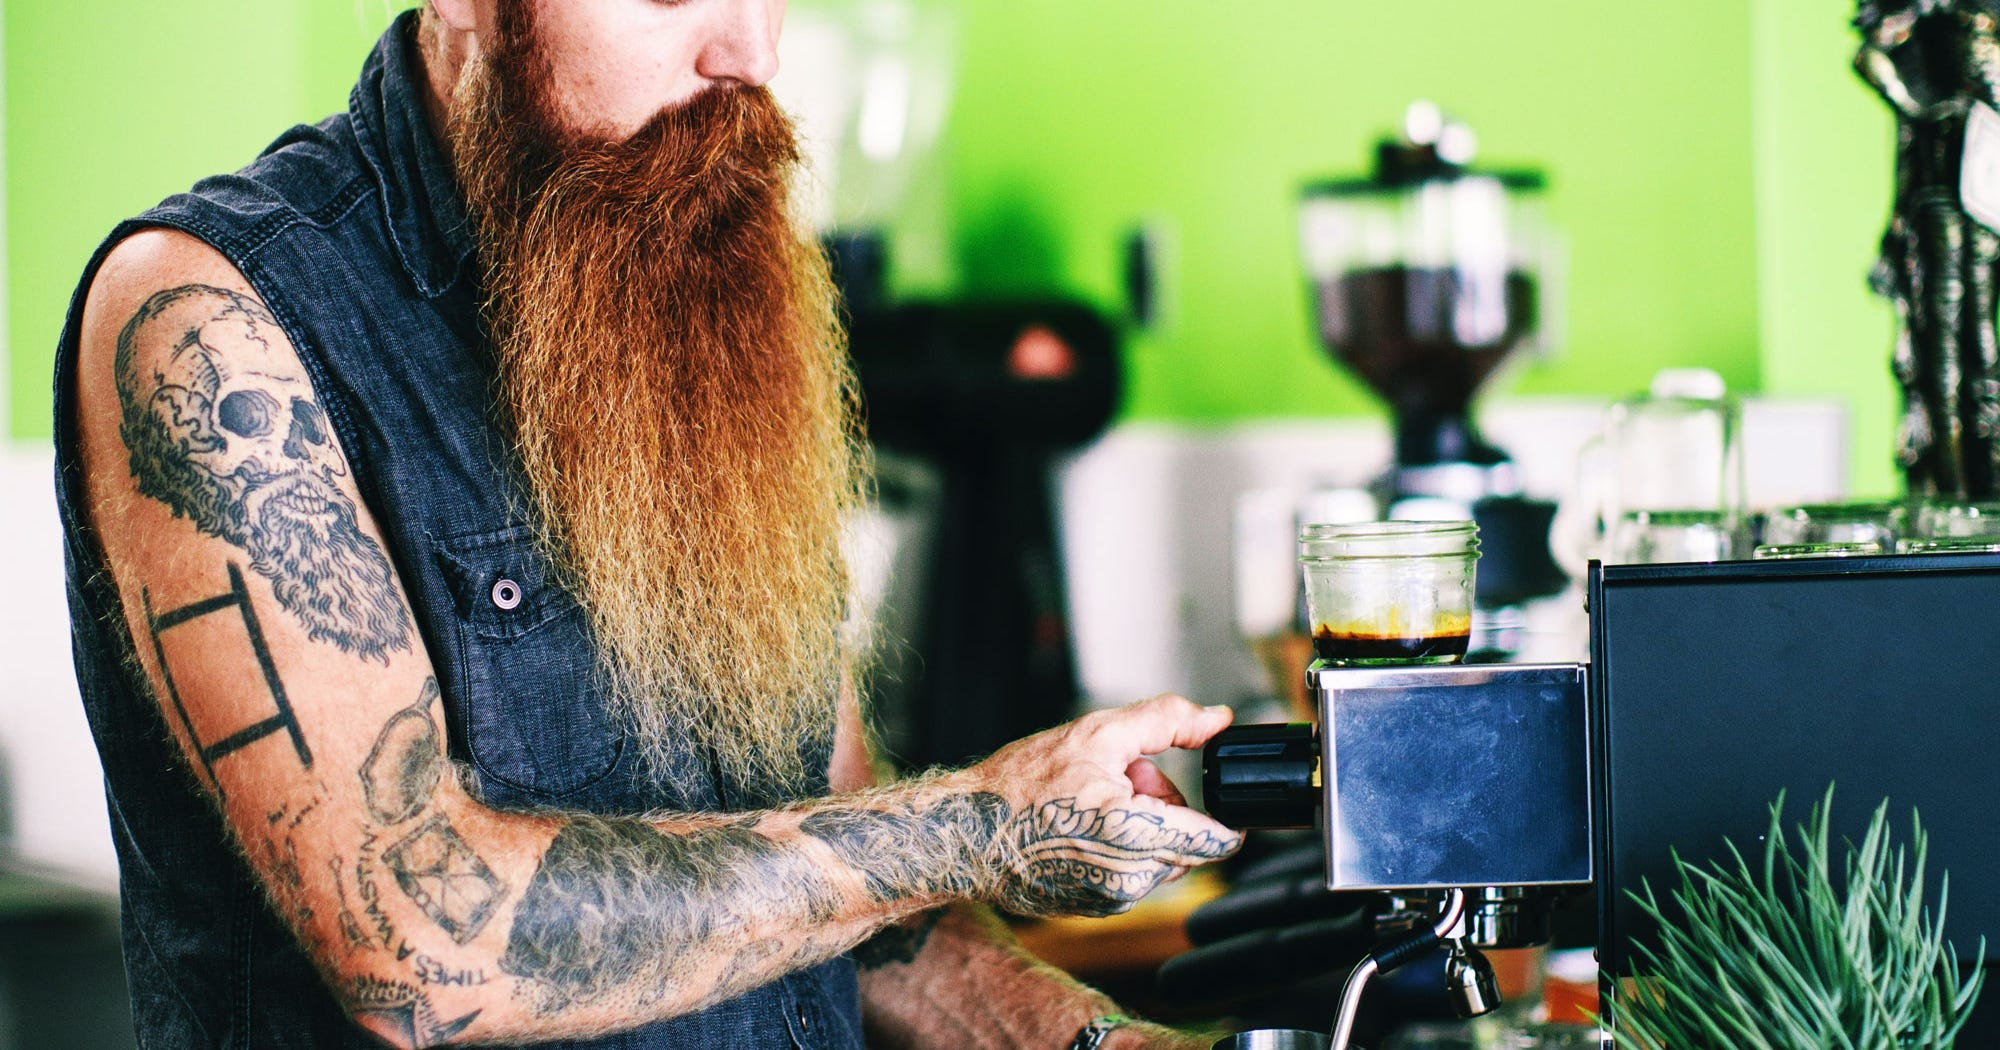 What It's REALLY Like To Be A San Francisco Barista